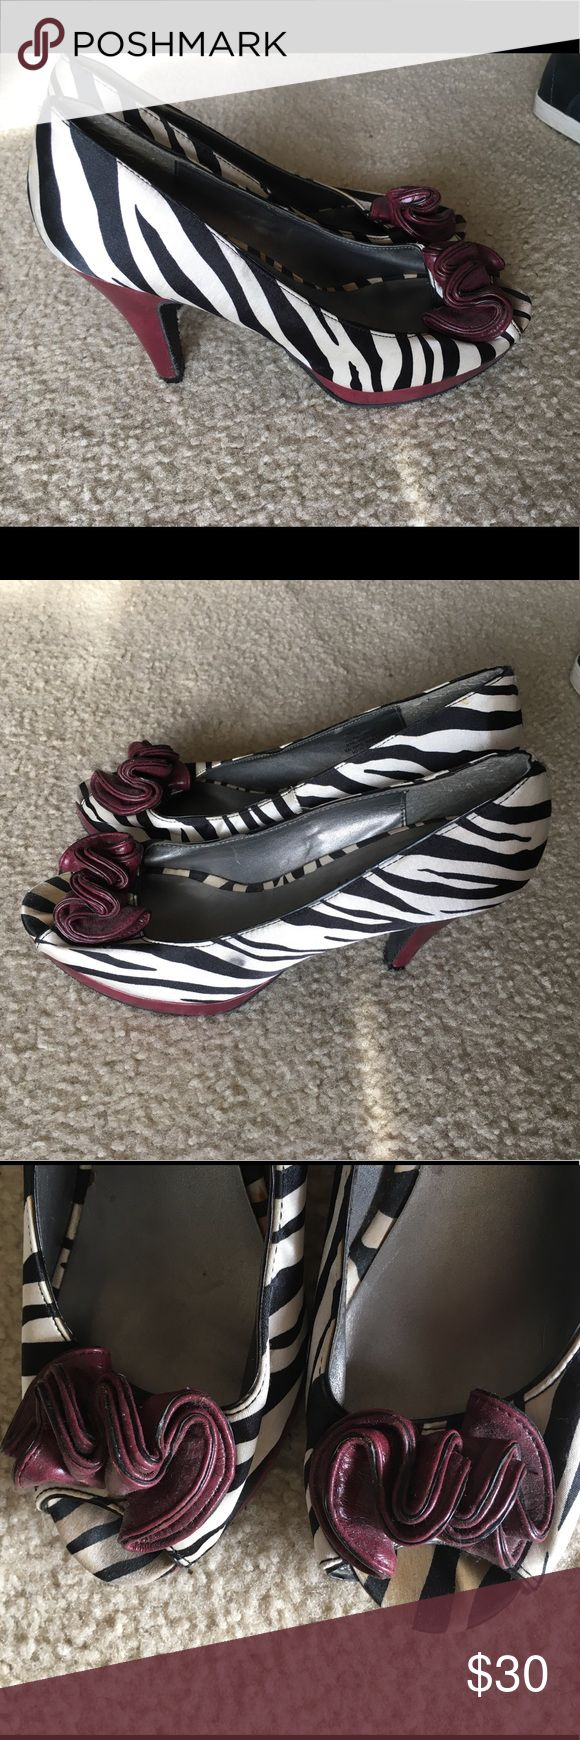 """Madden Girl Striped Zebra Heels Amazing striped heels with a maroon flower and maroon heels. Make a statement anywhere you go with these bad girls!  Heel height is 4"""". Size 10. The sole is sturdy even if you live in a colder climate. A few minor blemishes which you can see in the pics. Nothing's visible from the outside but one black smudge on the left shoe. I've probably worn them 3 times! Happy looking! Madden Girl Shoes Heels"""